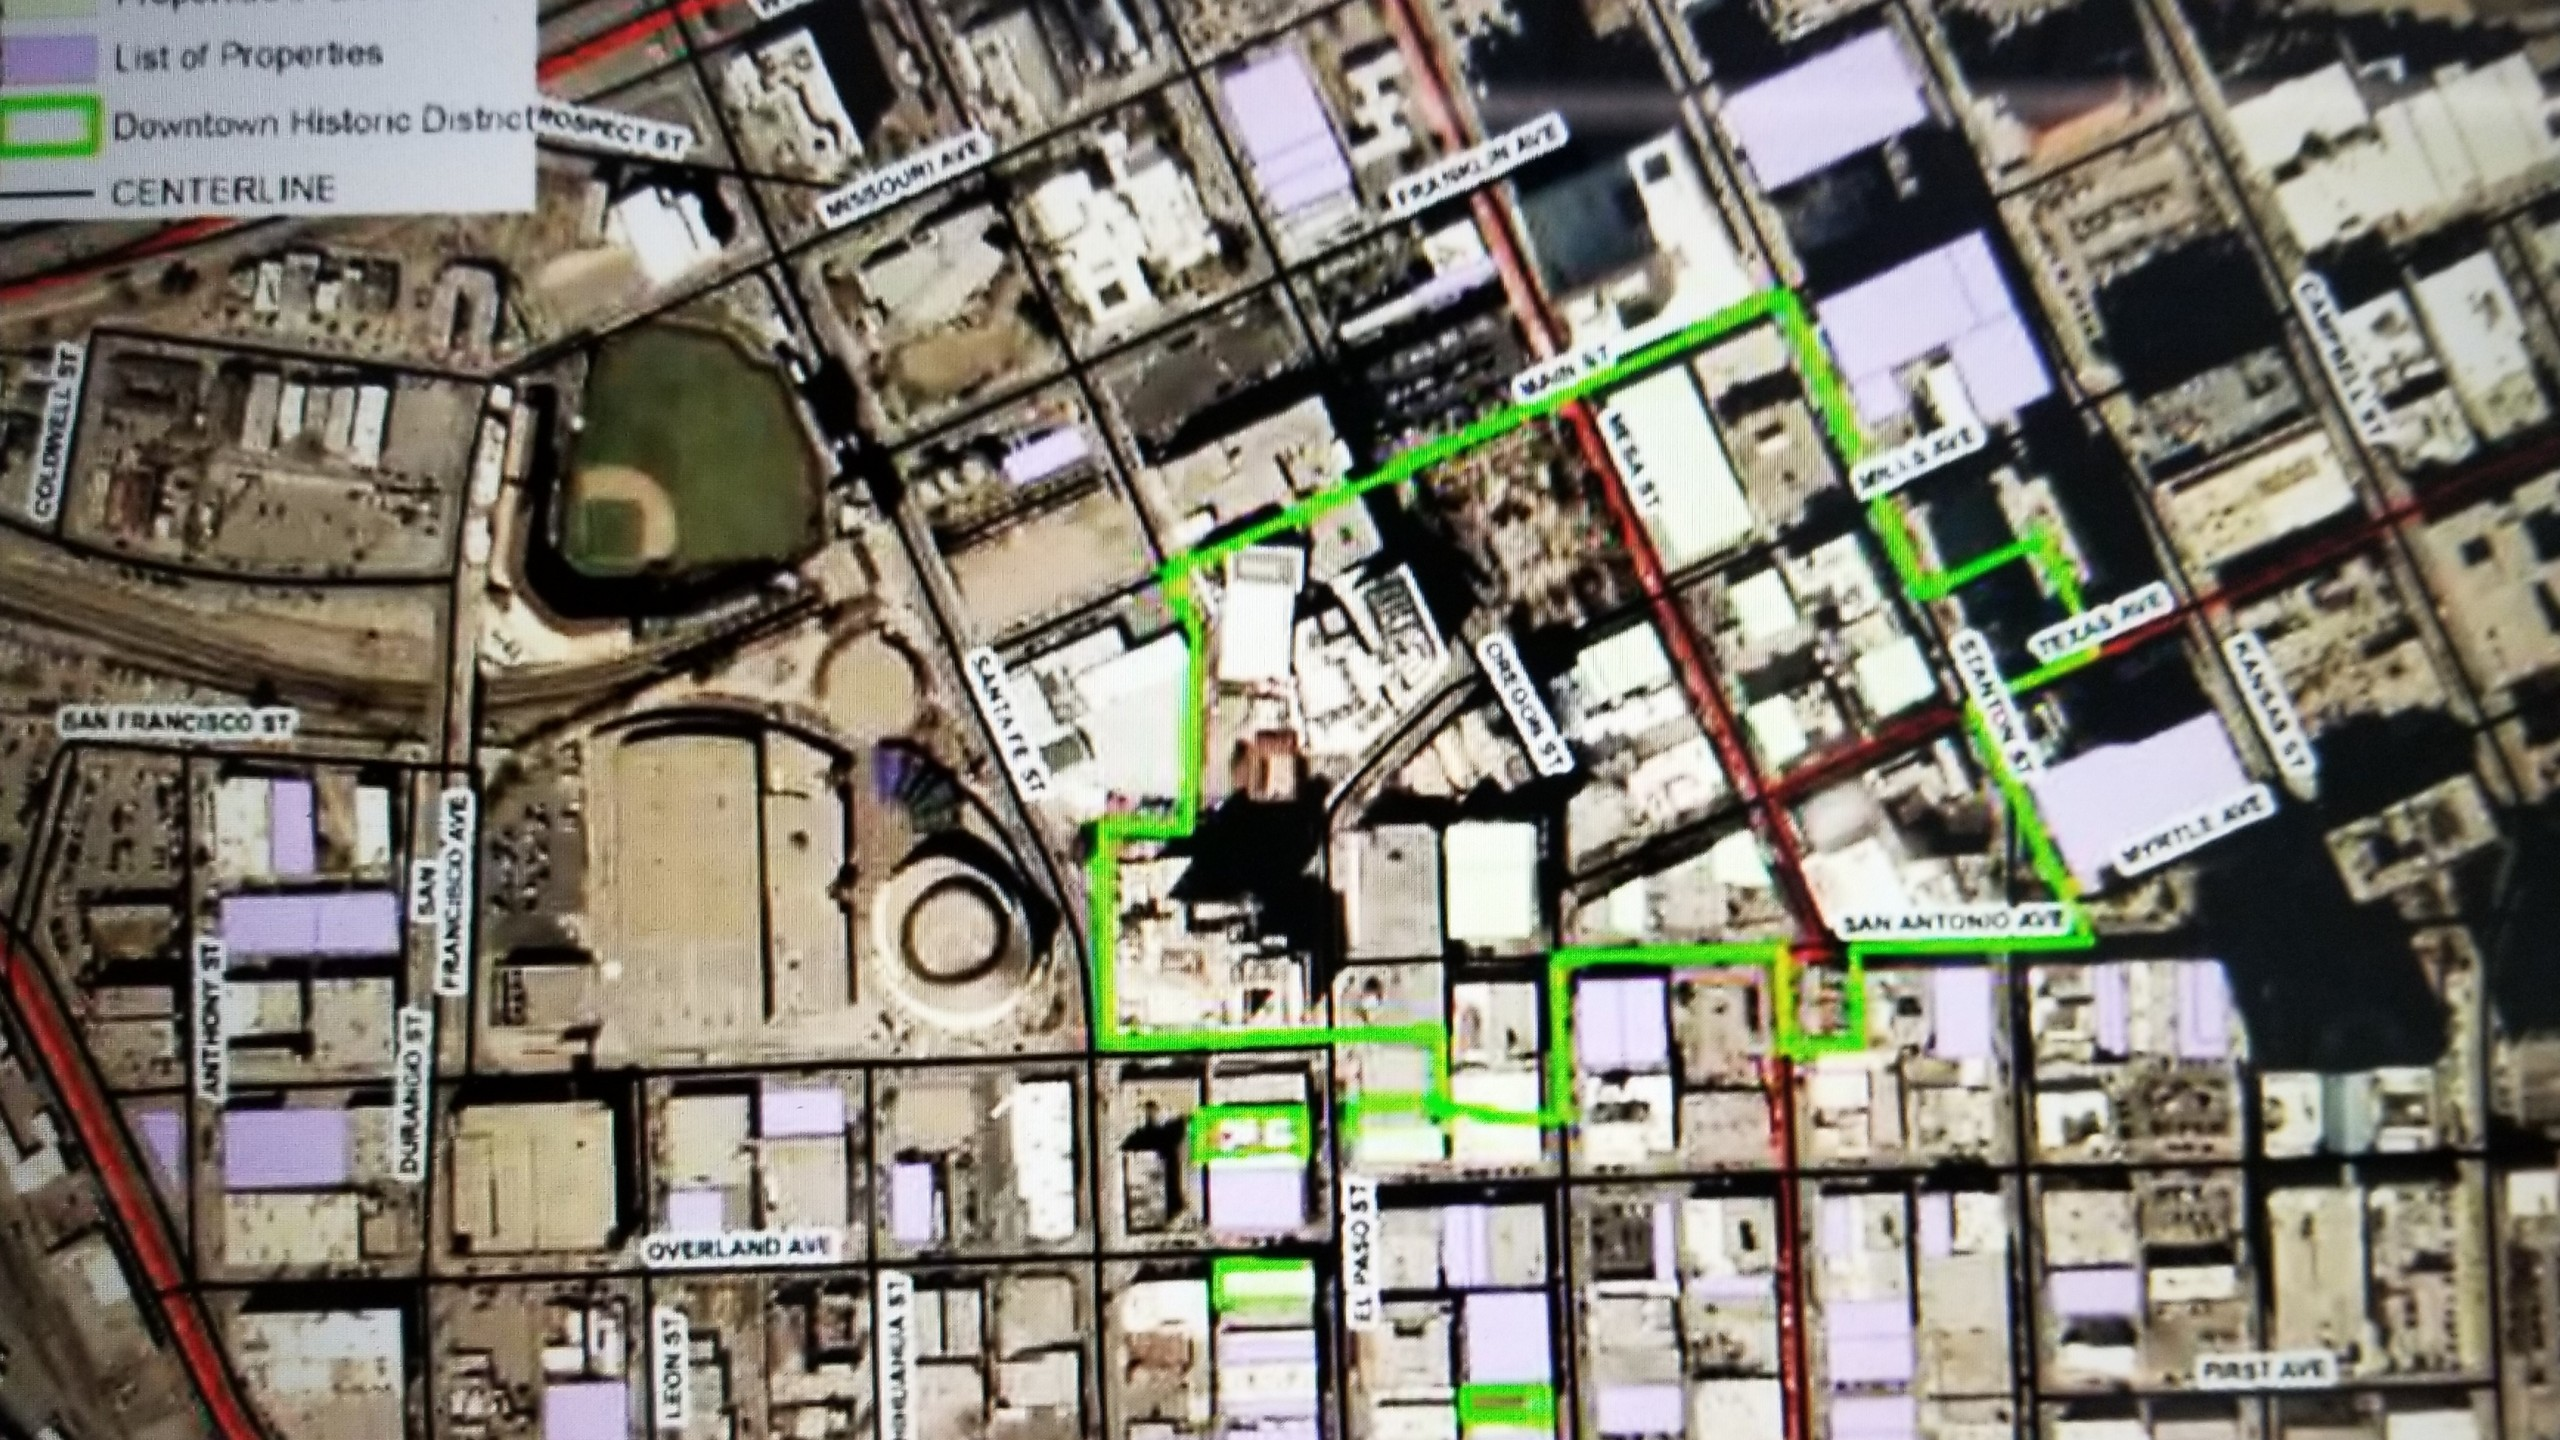 Satellite view map of the proposed Downtown Historic District in Downtown El Paso. A green line indicates the area to be included in the district.